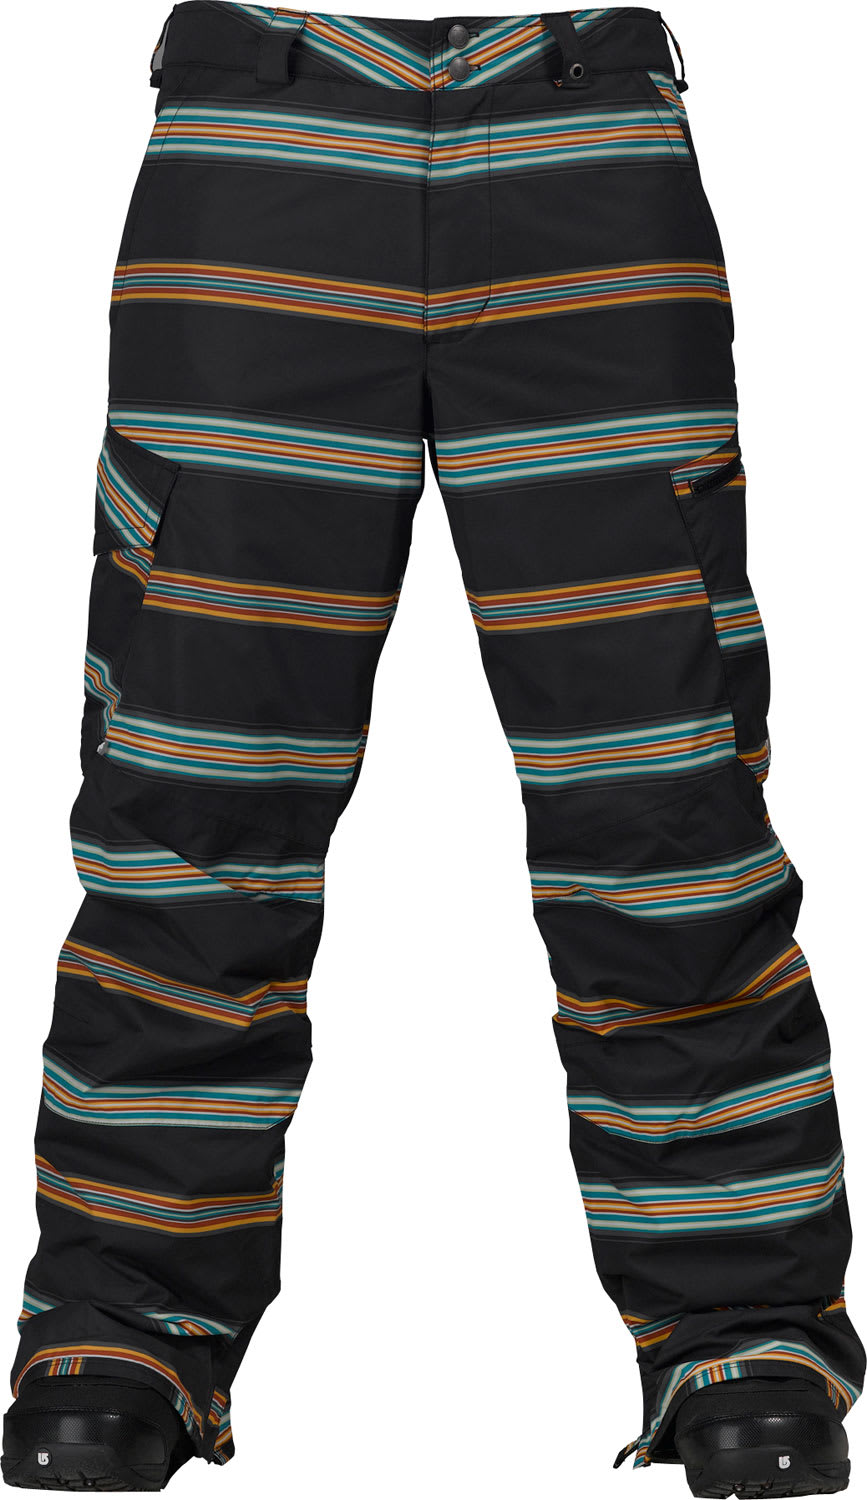 Shop for Burton Cargo Snowboard Pant True Black Bandwidth Stripe Print - Men's